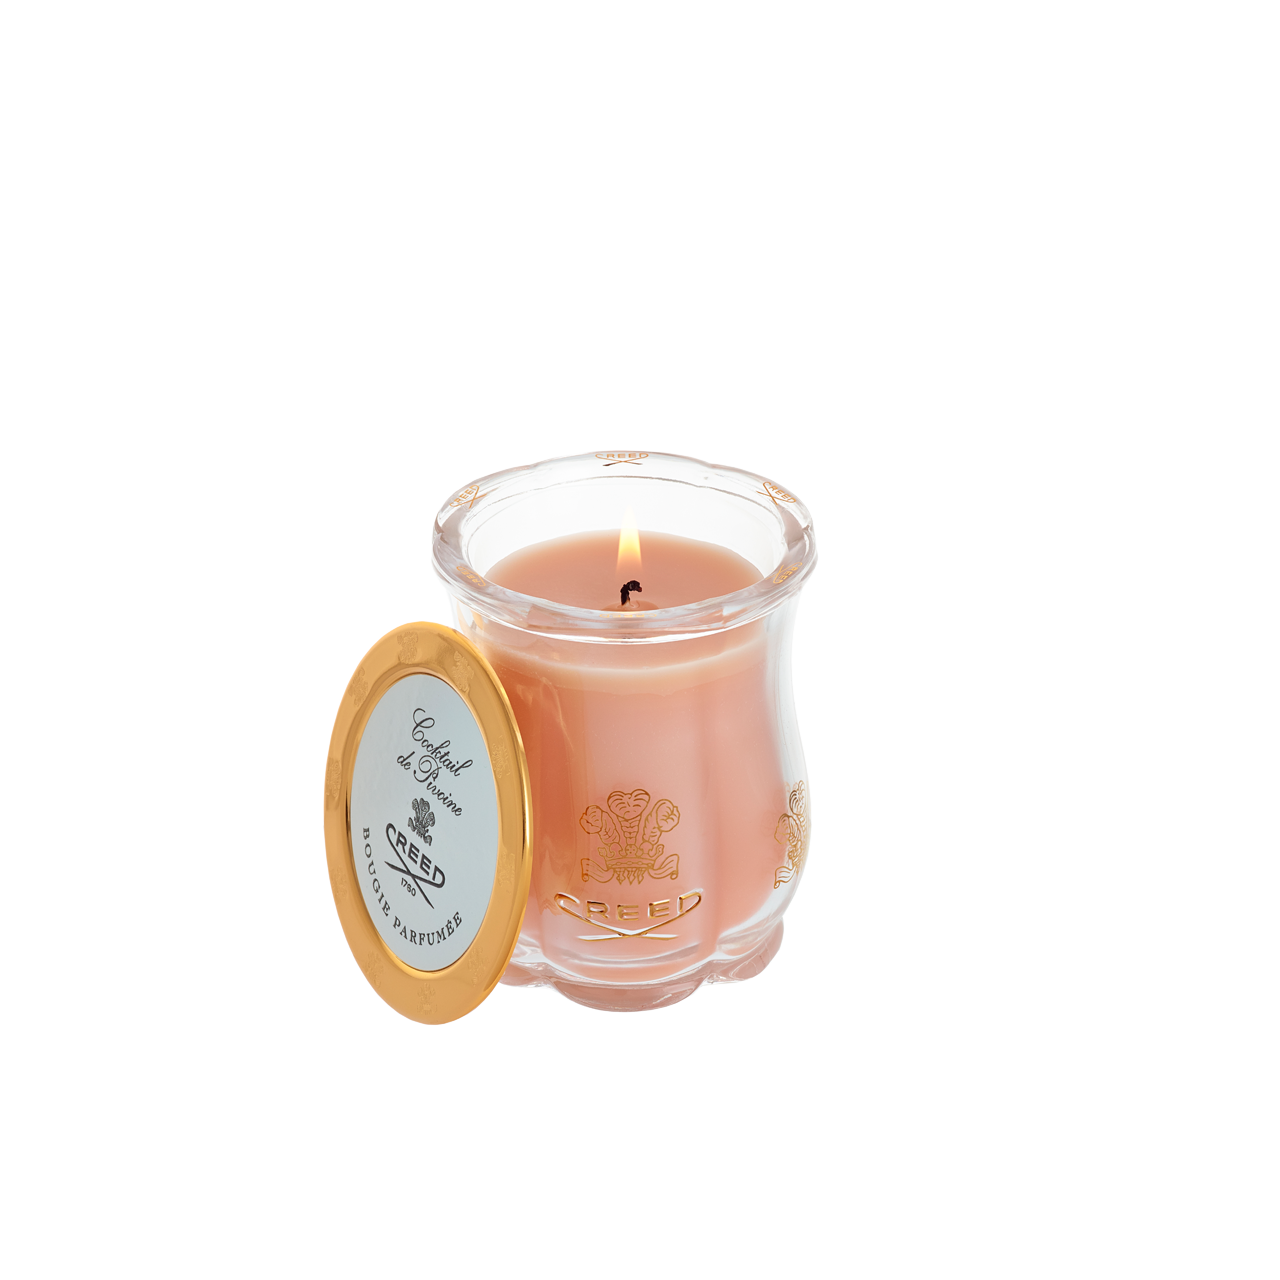 Cocktail De Pivoines Candle